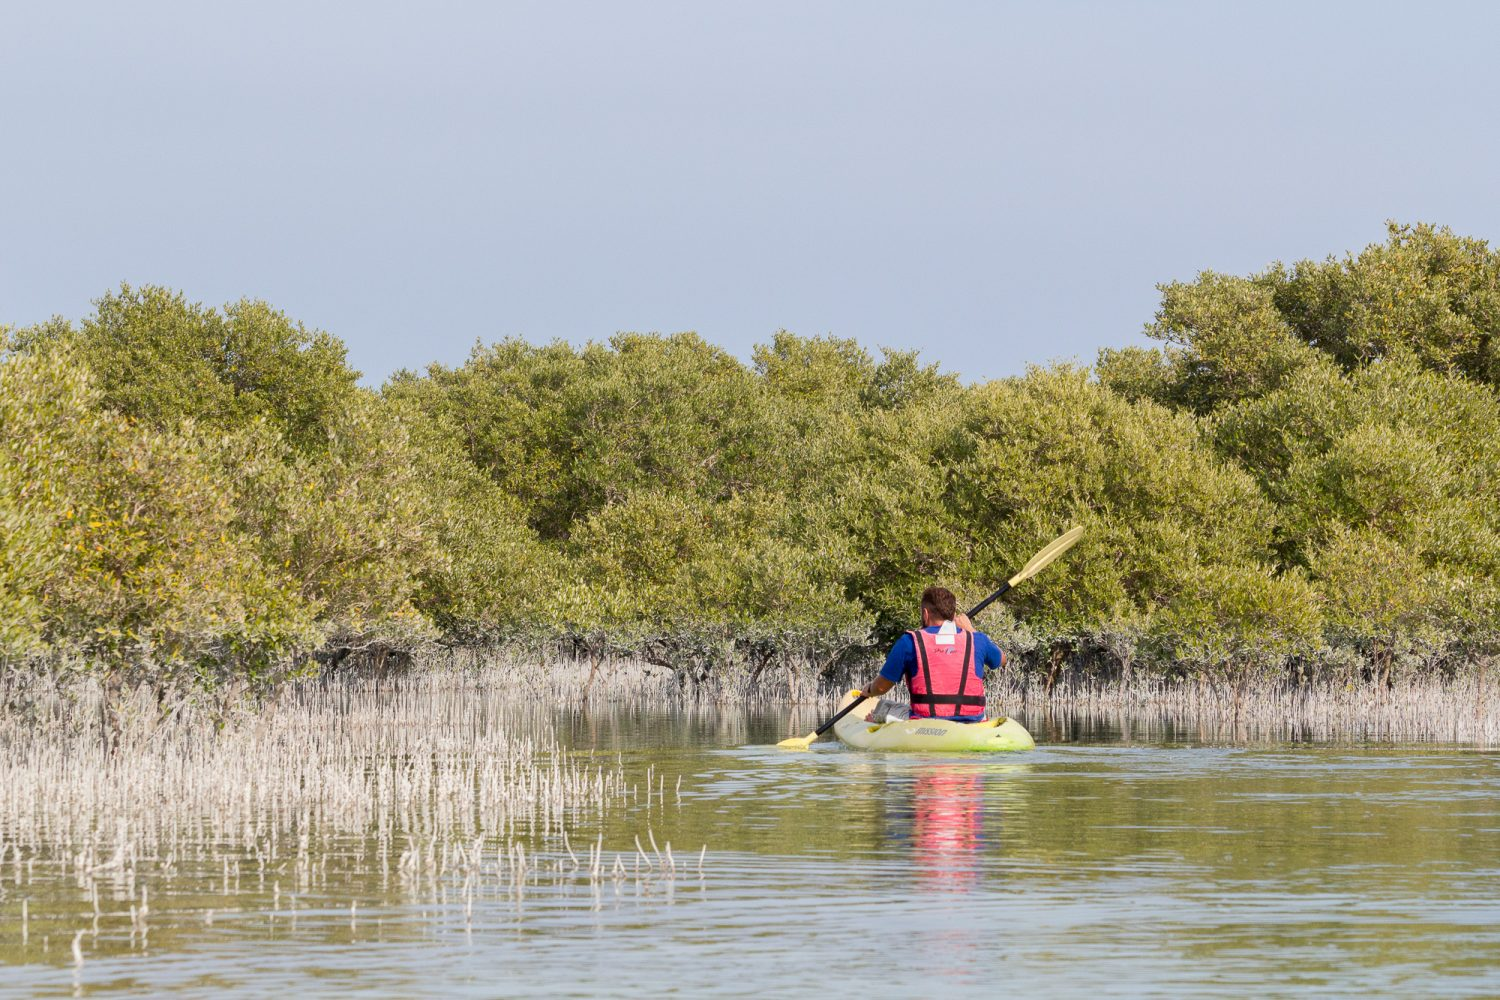 What to do in Doha Layover Stopover Travel Guide_Al Thakira Mangroves Nature Reserve Qatar_Kayak